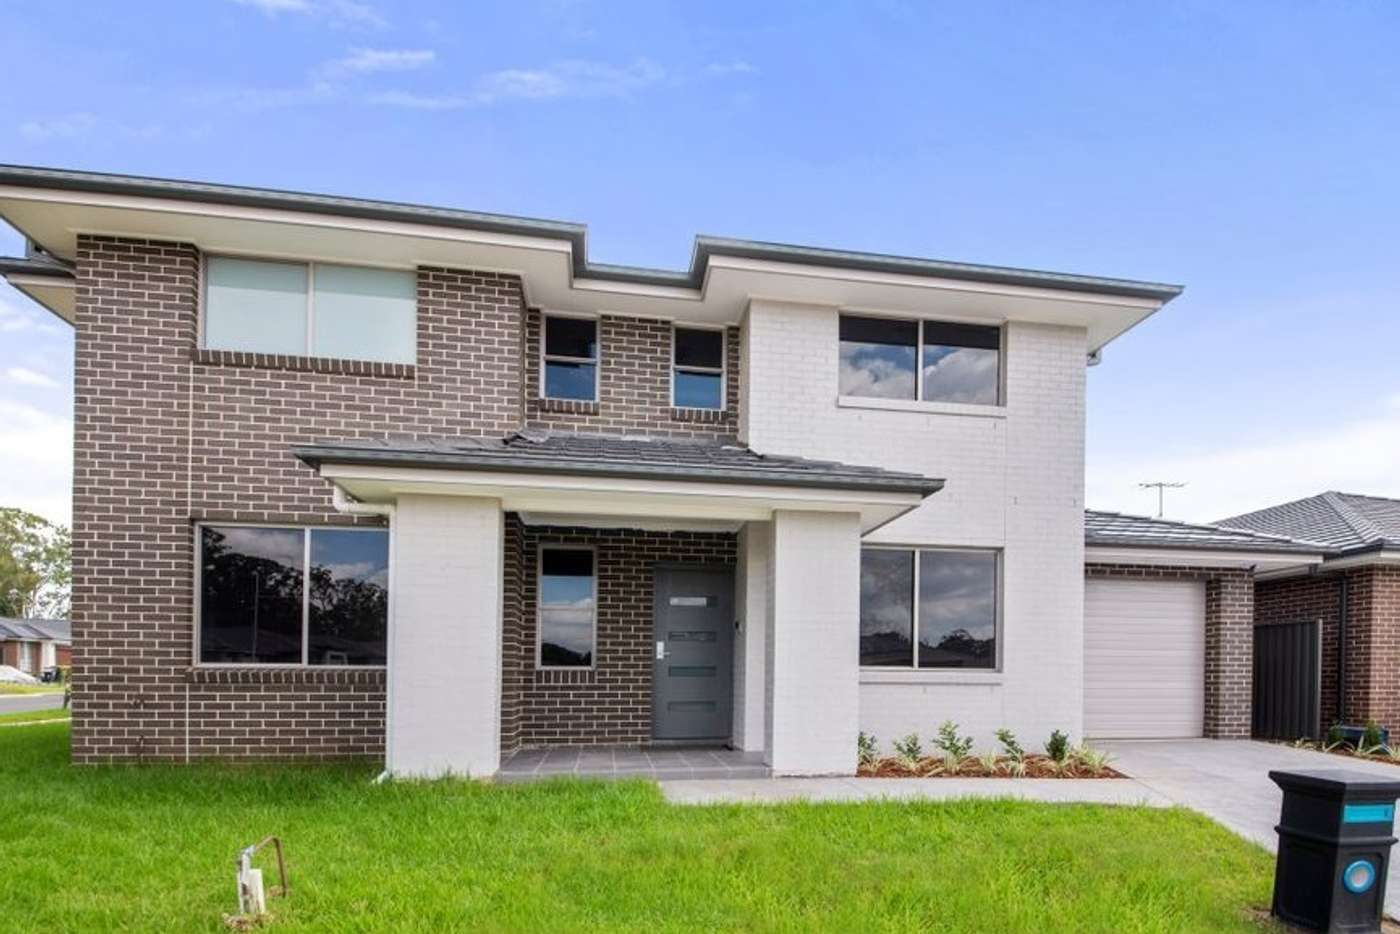 Main view of Homely house listing, 55 Aqueduct Street, Leppington NSW 2179